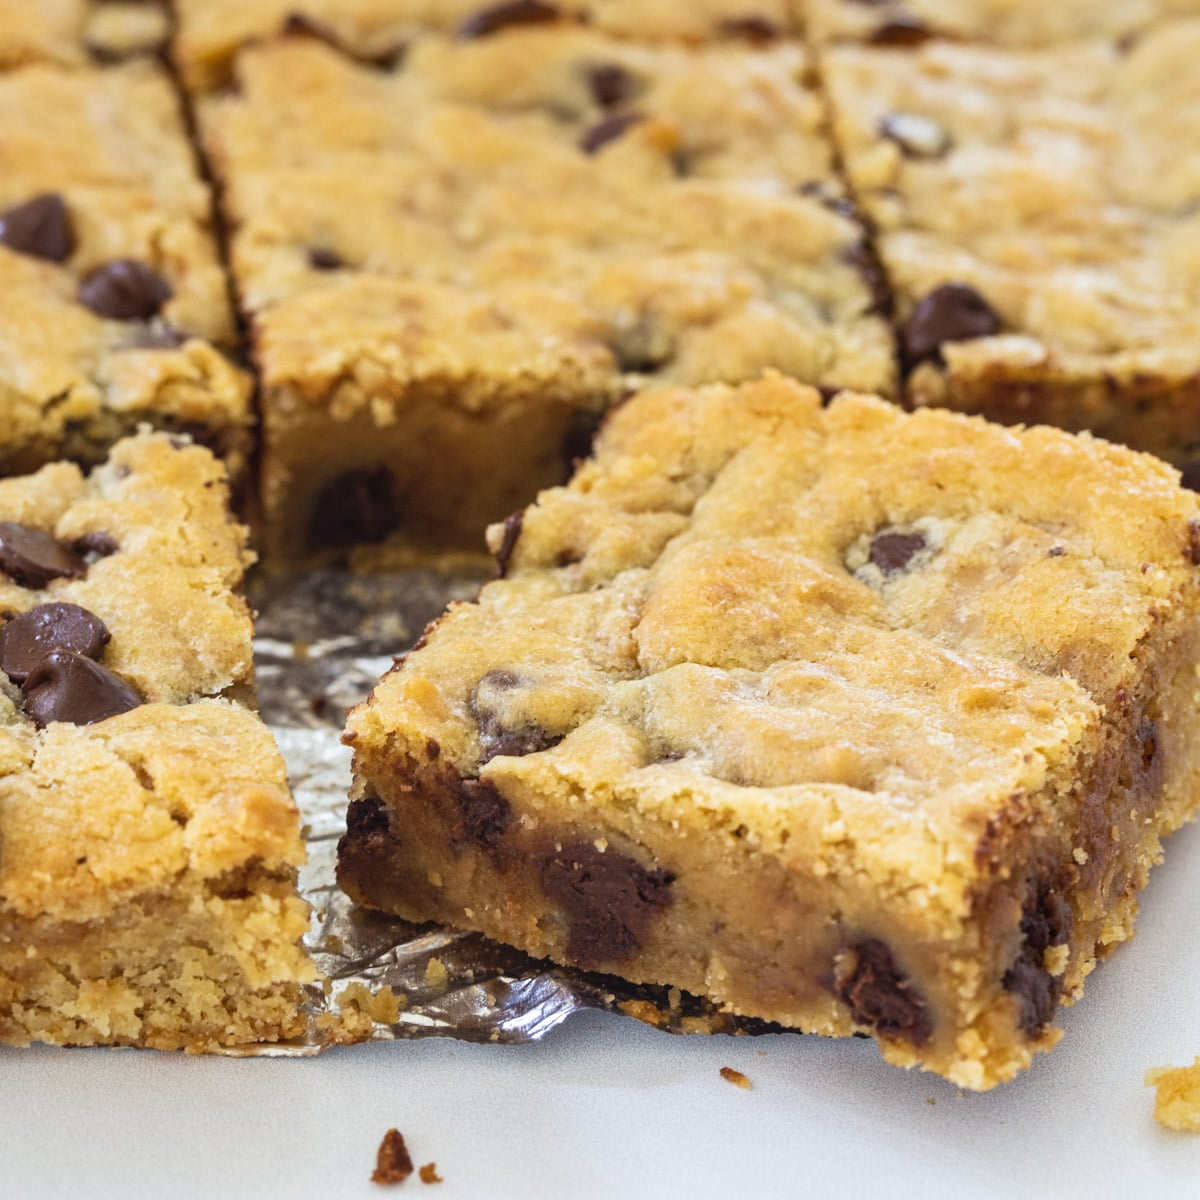 Toffee Chocolate Chip bars cut into squares.